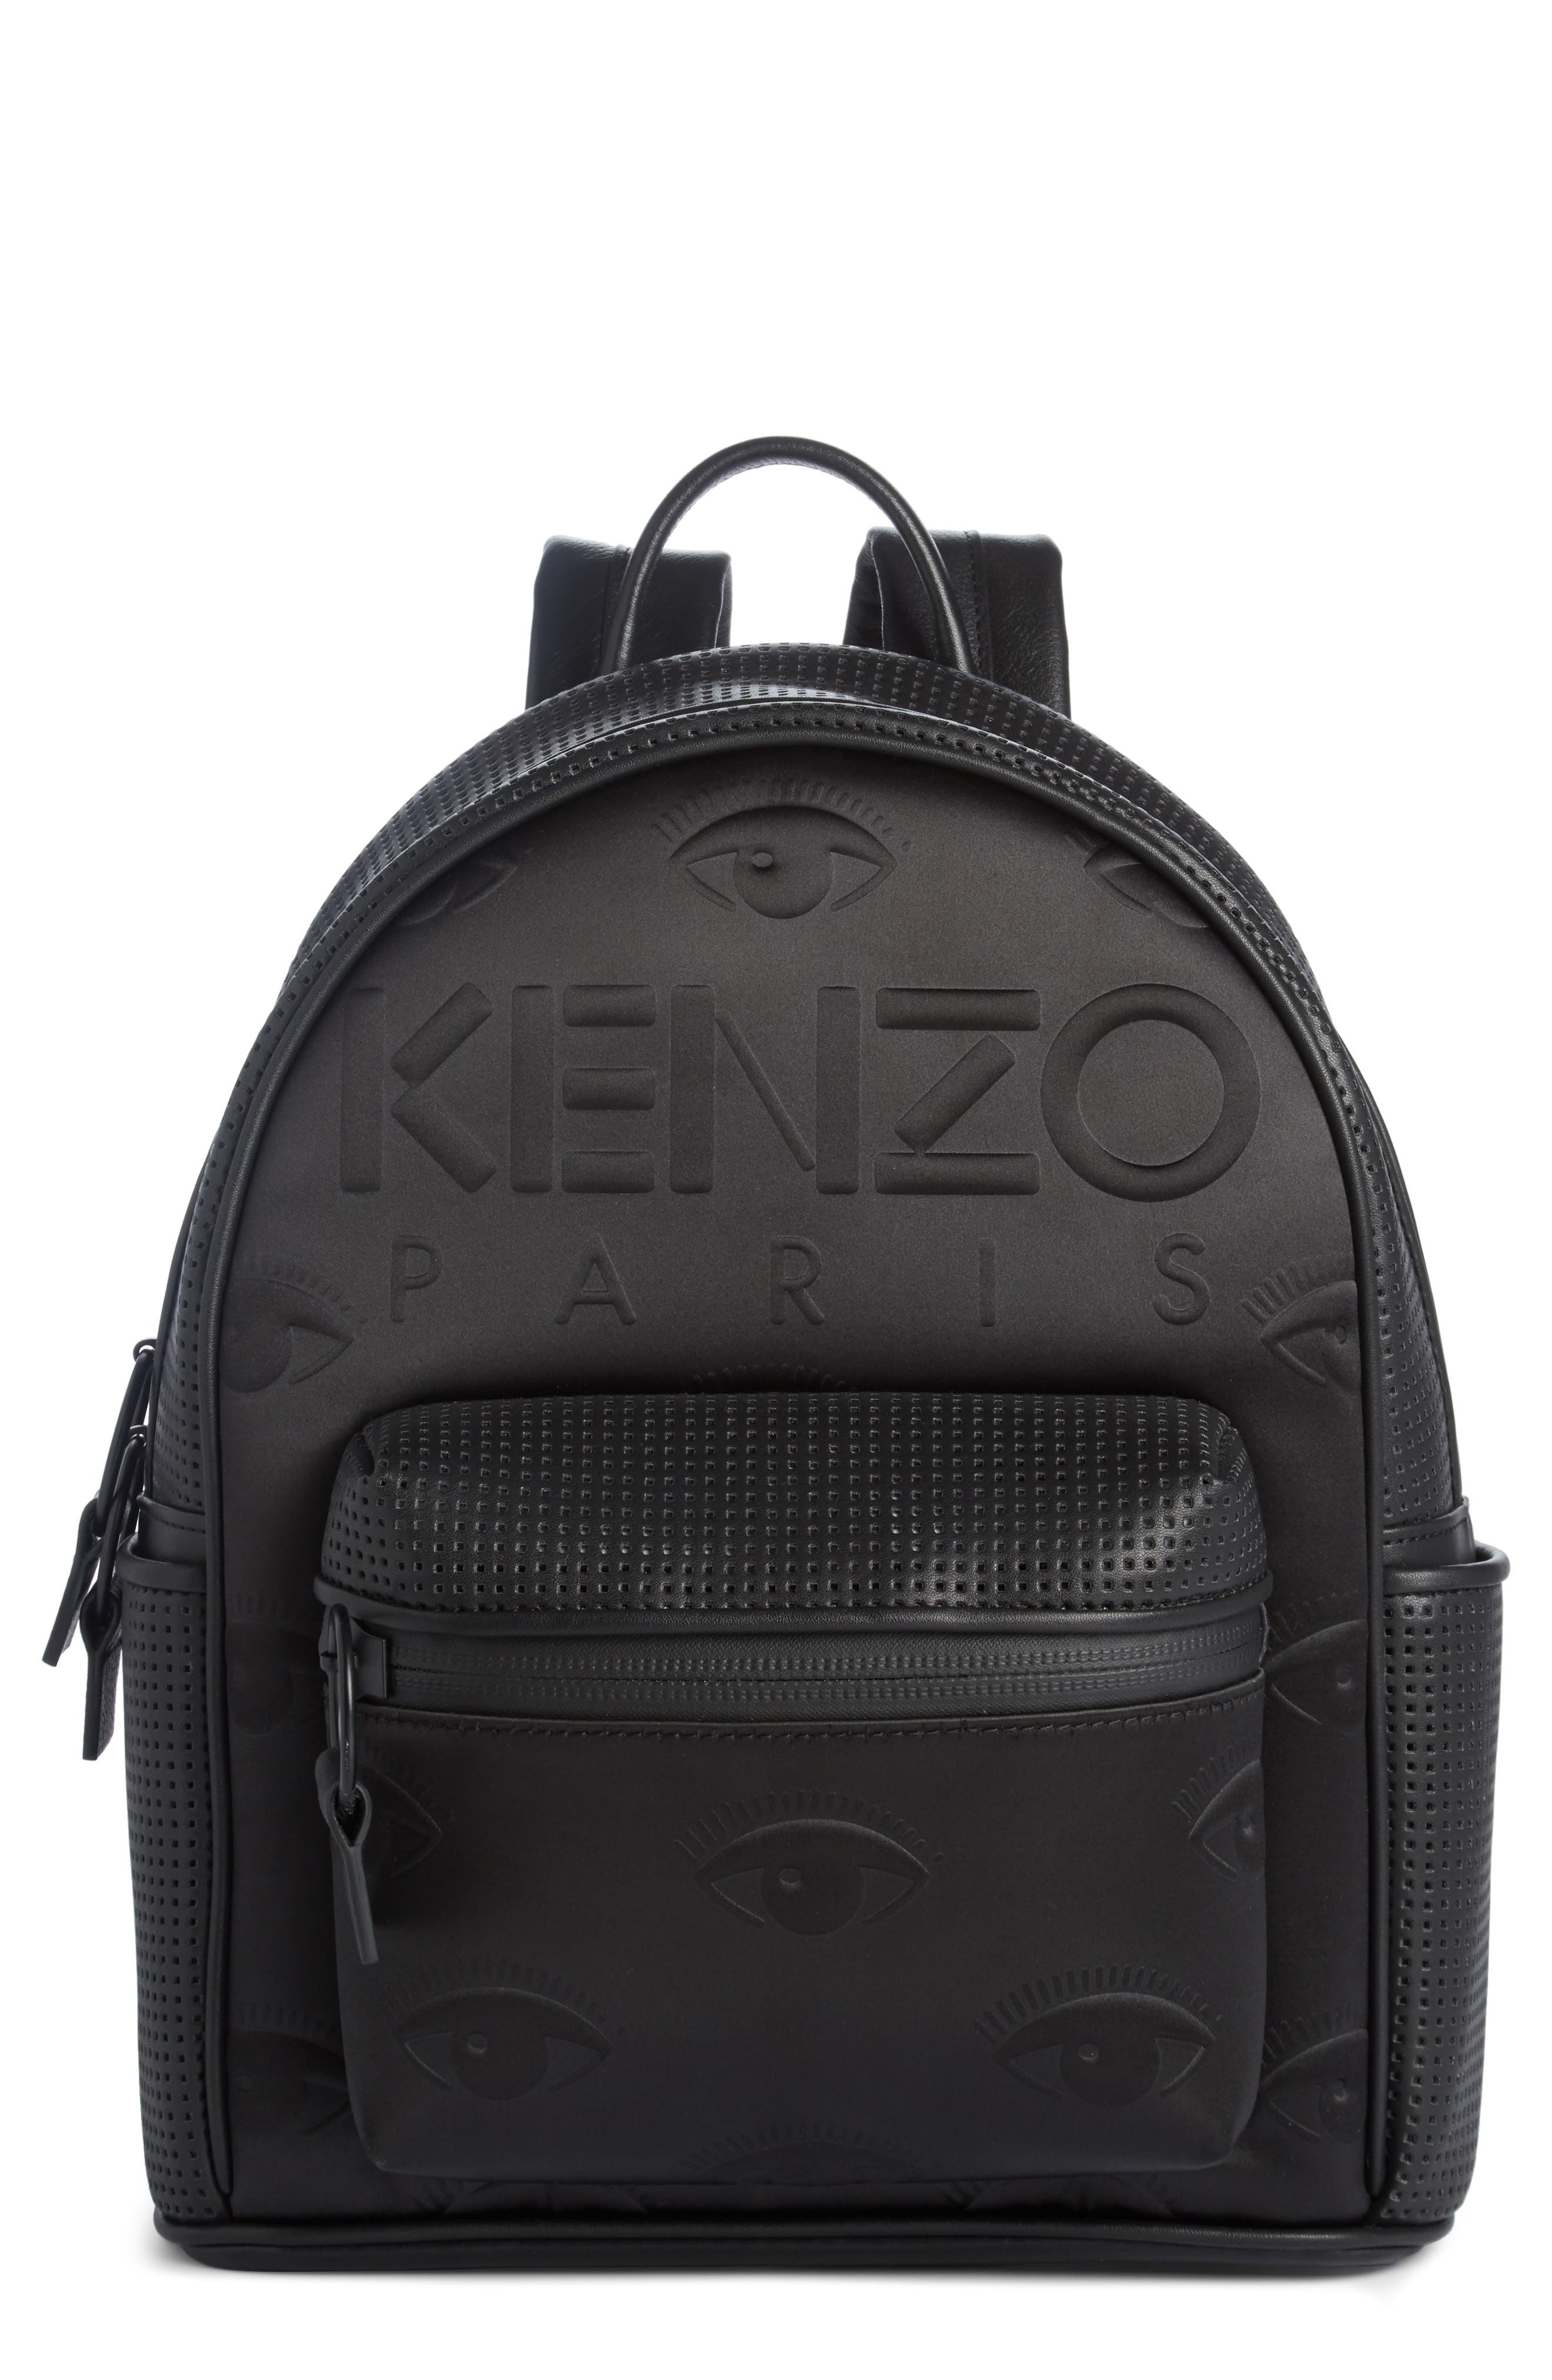 Eyes Perforated Nylon Backpack,                         Main,                         color, Black